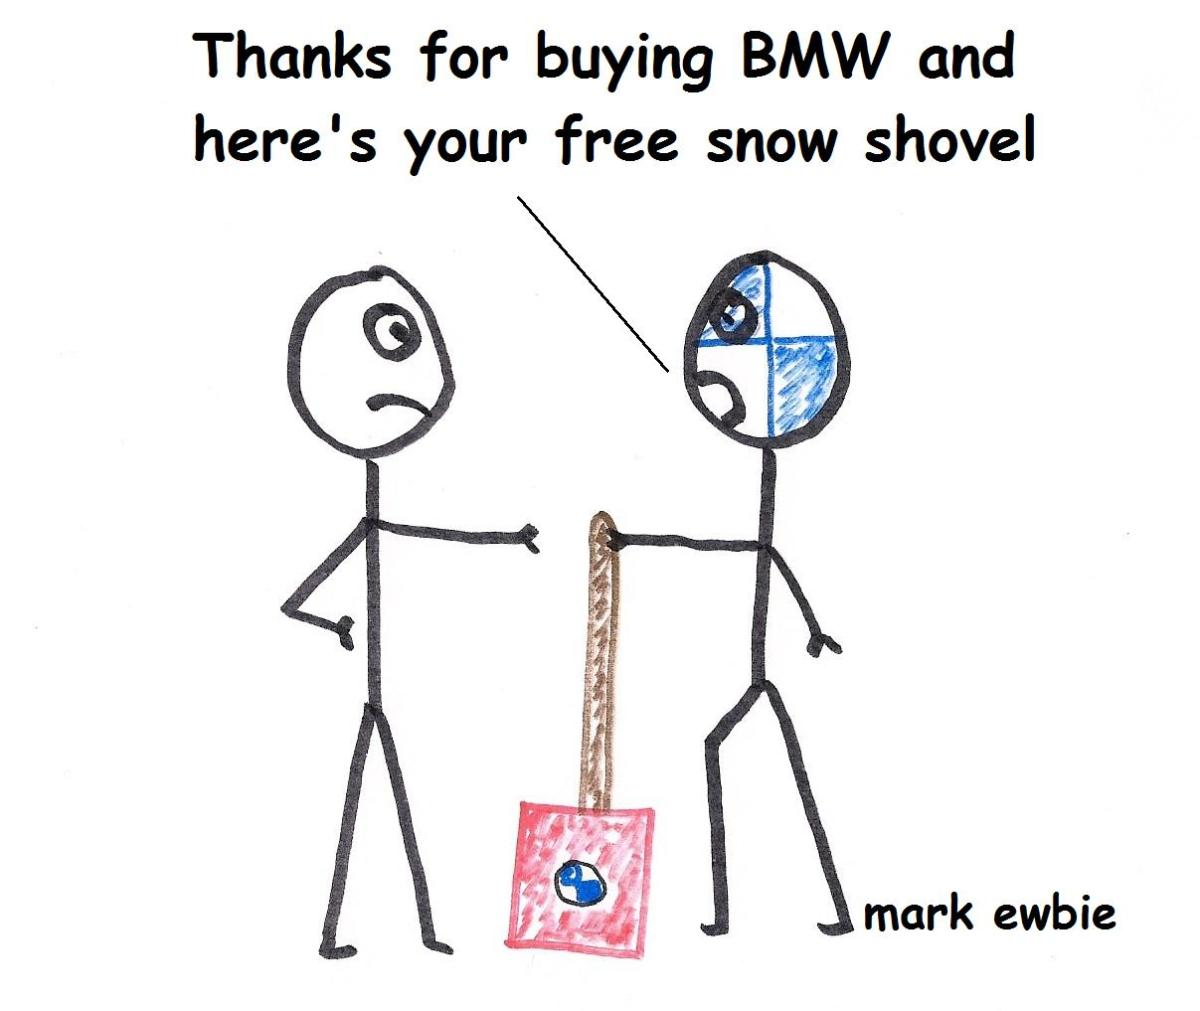 Every rear wheel drive BMW should come with a free snow shovel